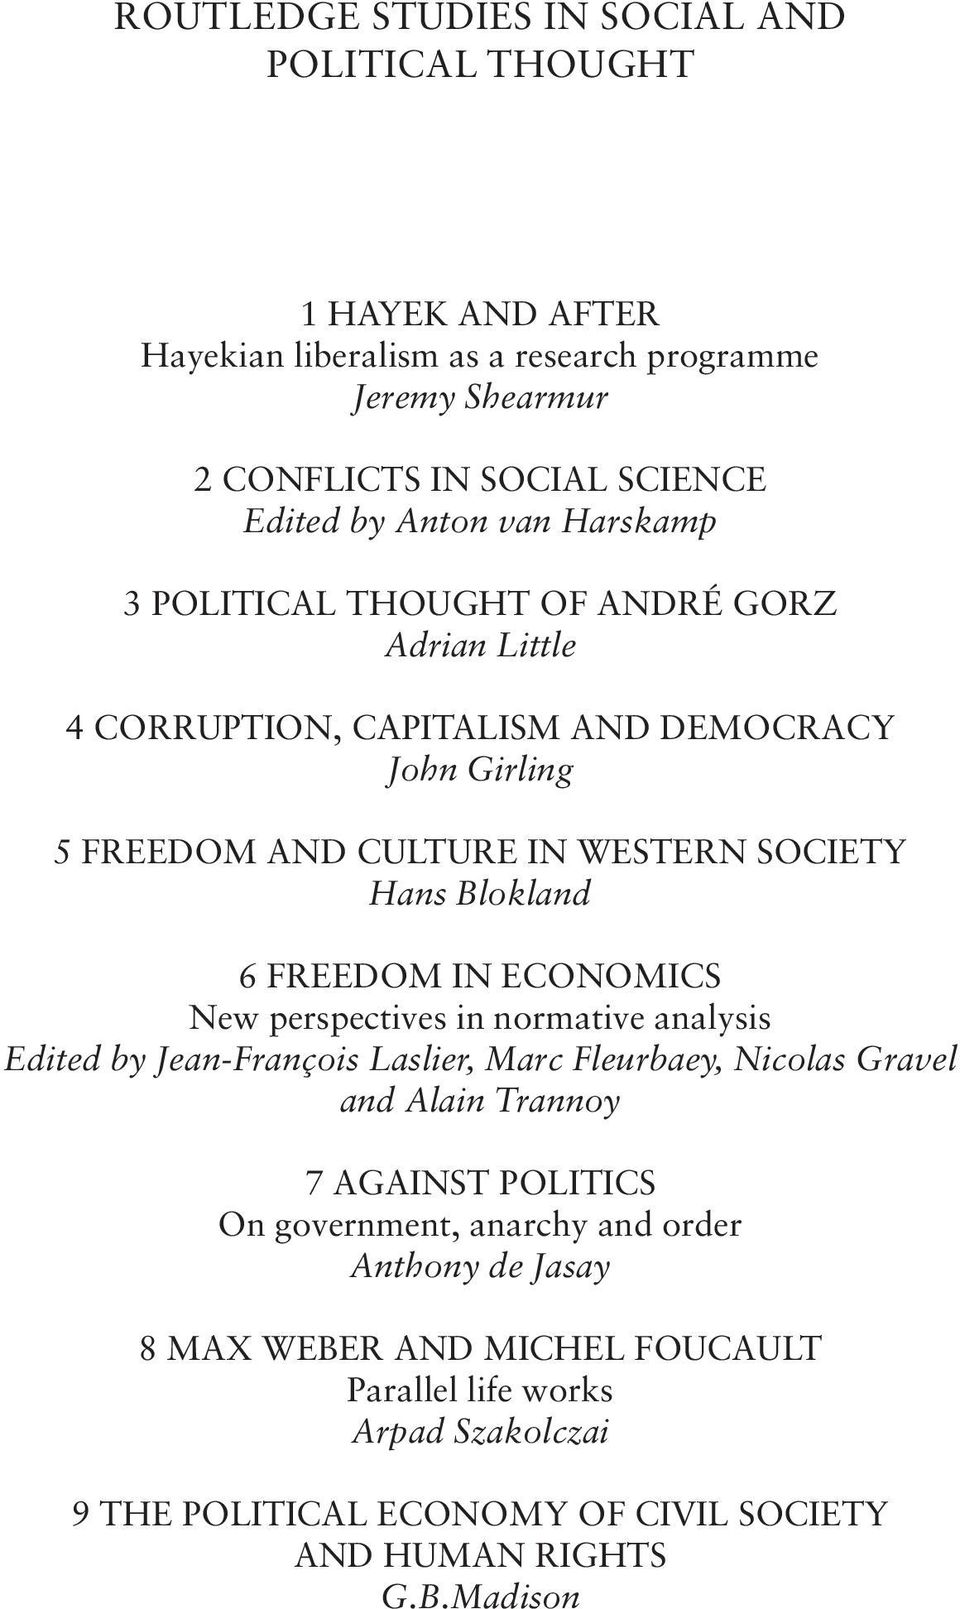 FREEDOM IN ECONOMICS New perspectives in normative analysis Edited by Jean-François Laslier, Marc Fleurbaey, Nicolas Gravel and Alain Trannoy 7 AGAINST POLITICS On